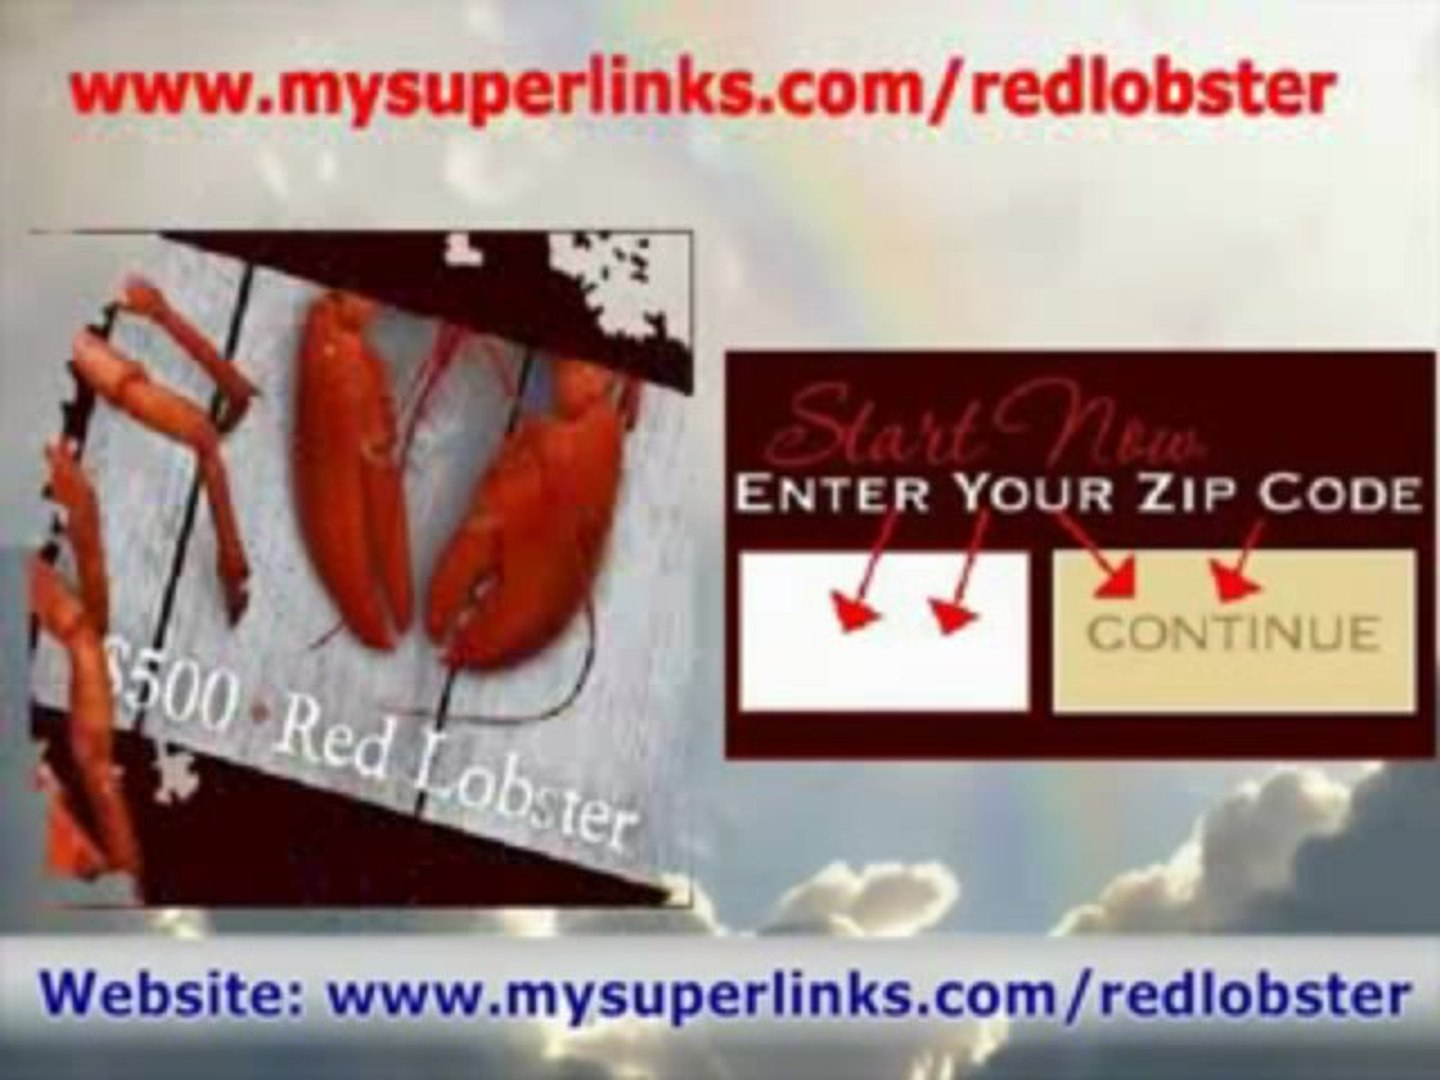 Red Lobster Printable Online Coupons Free) *$500 Cards* - Video - Free Printable Red Lobster Coupons